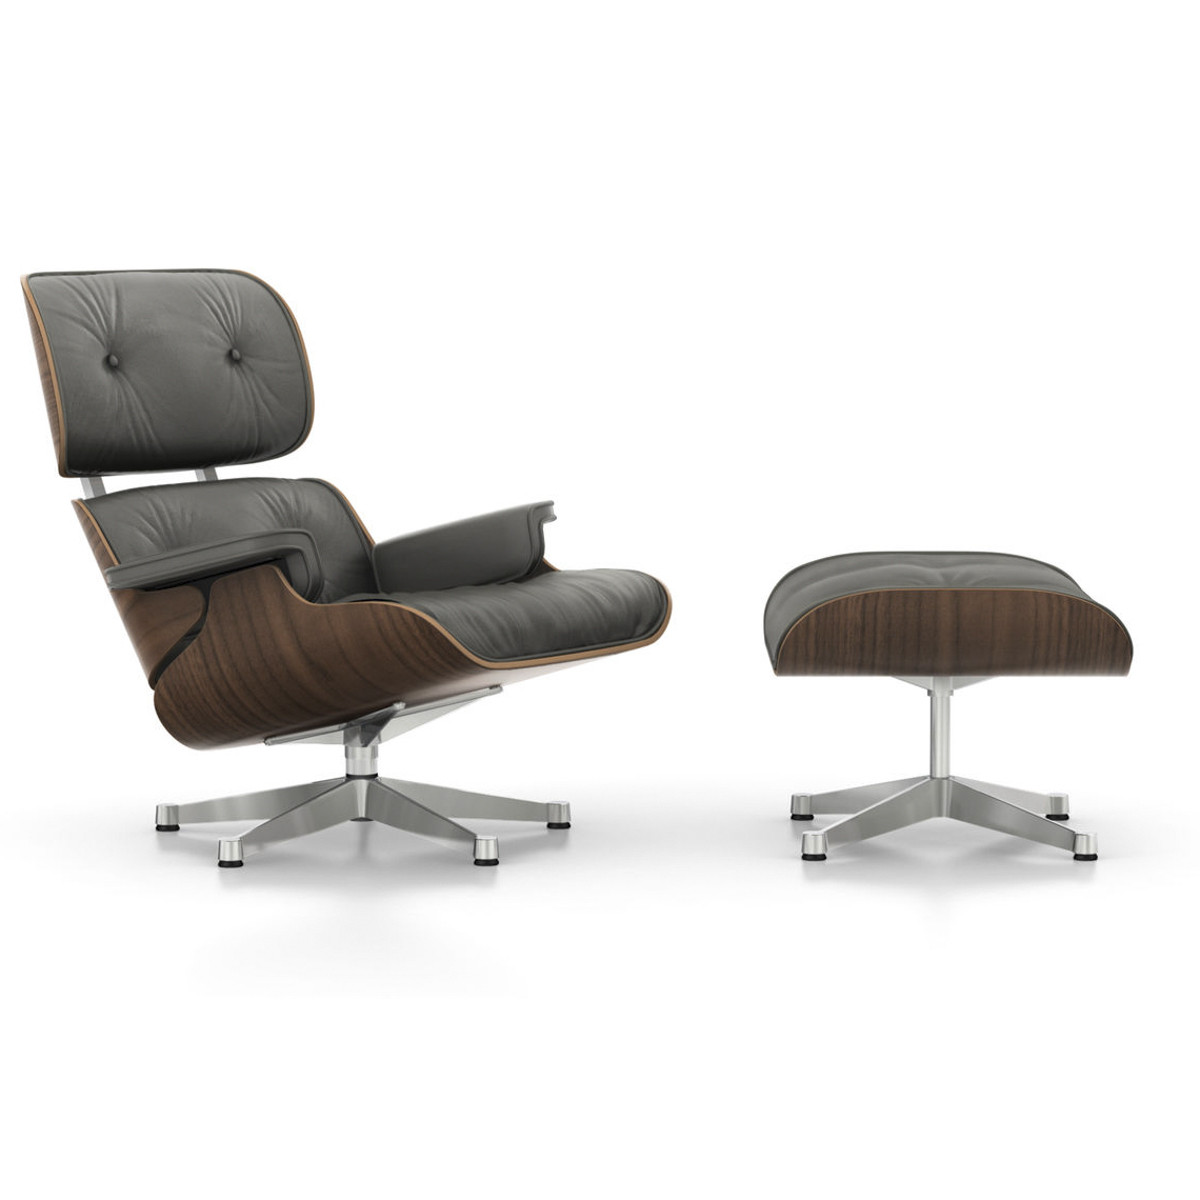 Charles Eames Lounge Chair Vitra Eames Lounge Chair And Ottoman - Black Pigmented Walnut | Beut.co.uk